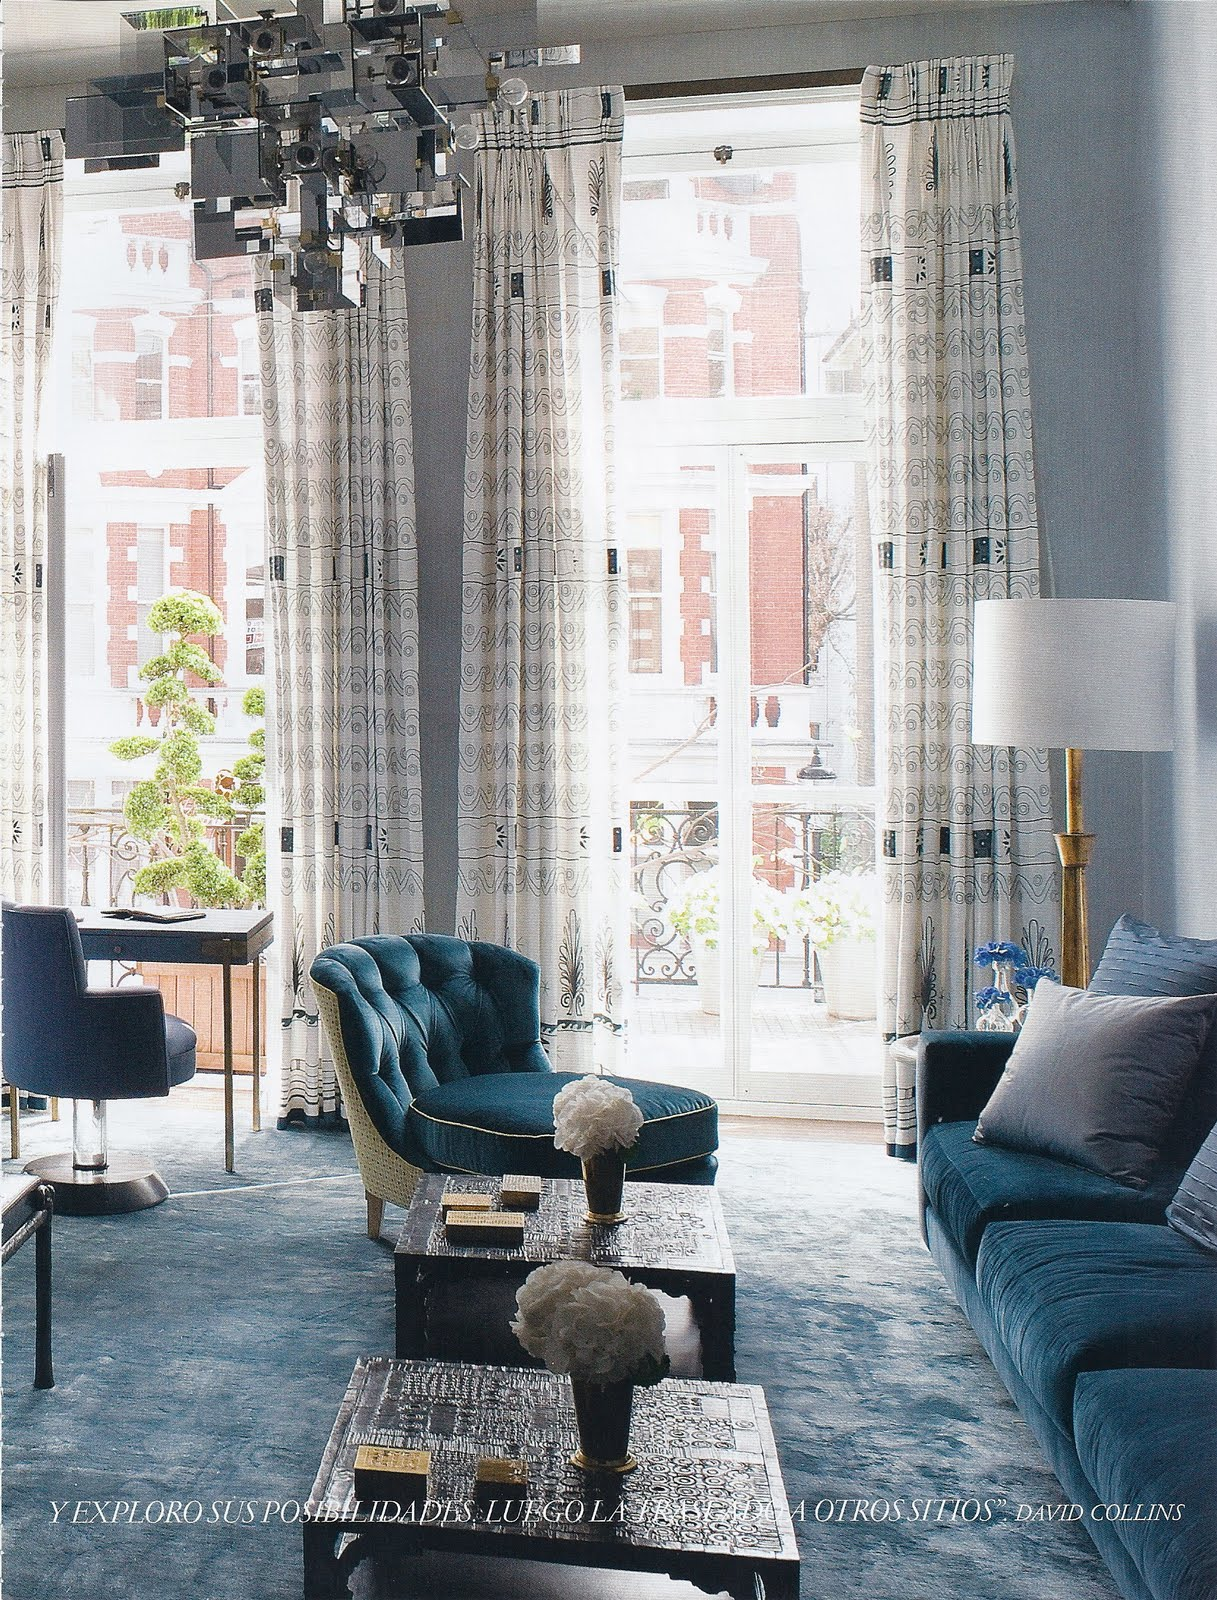 Lovely ugly design david collins london apartment for Apartment design london